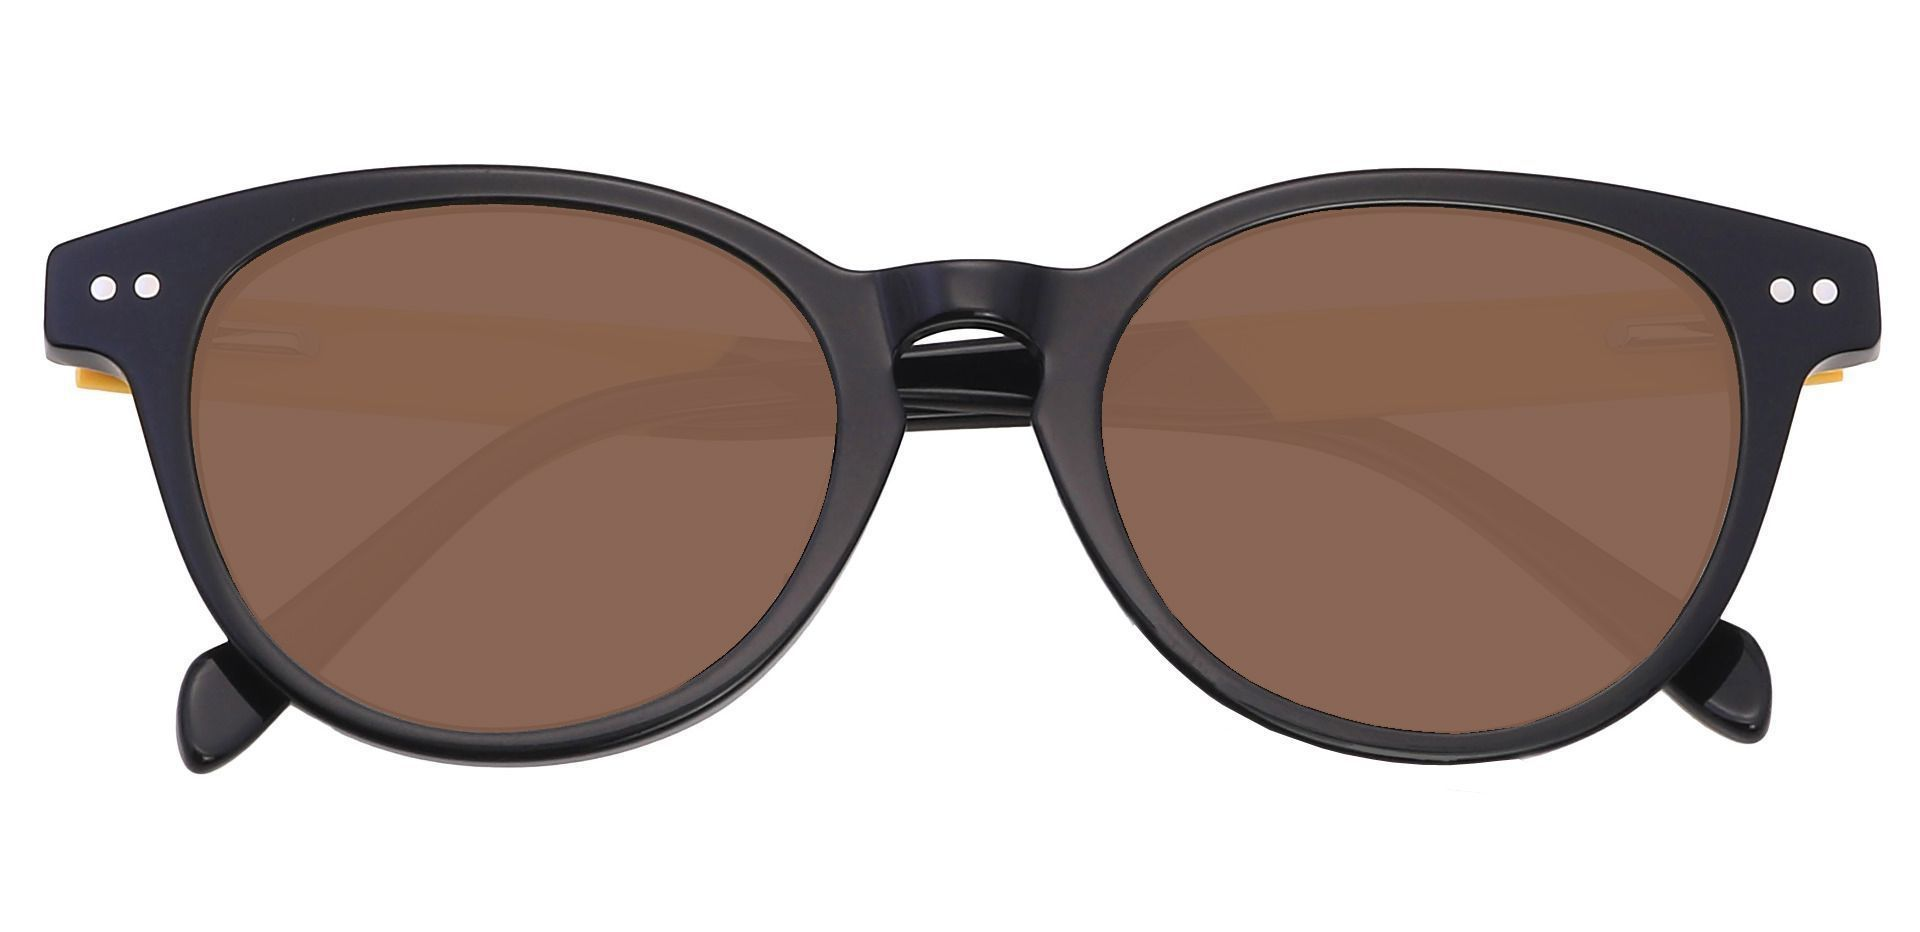 Oakland Oval Reading Sunglasses - Black Frame With Brown Lenses